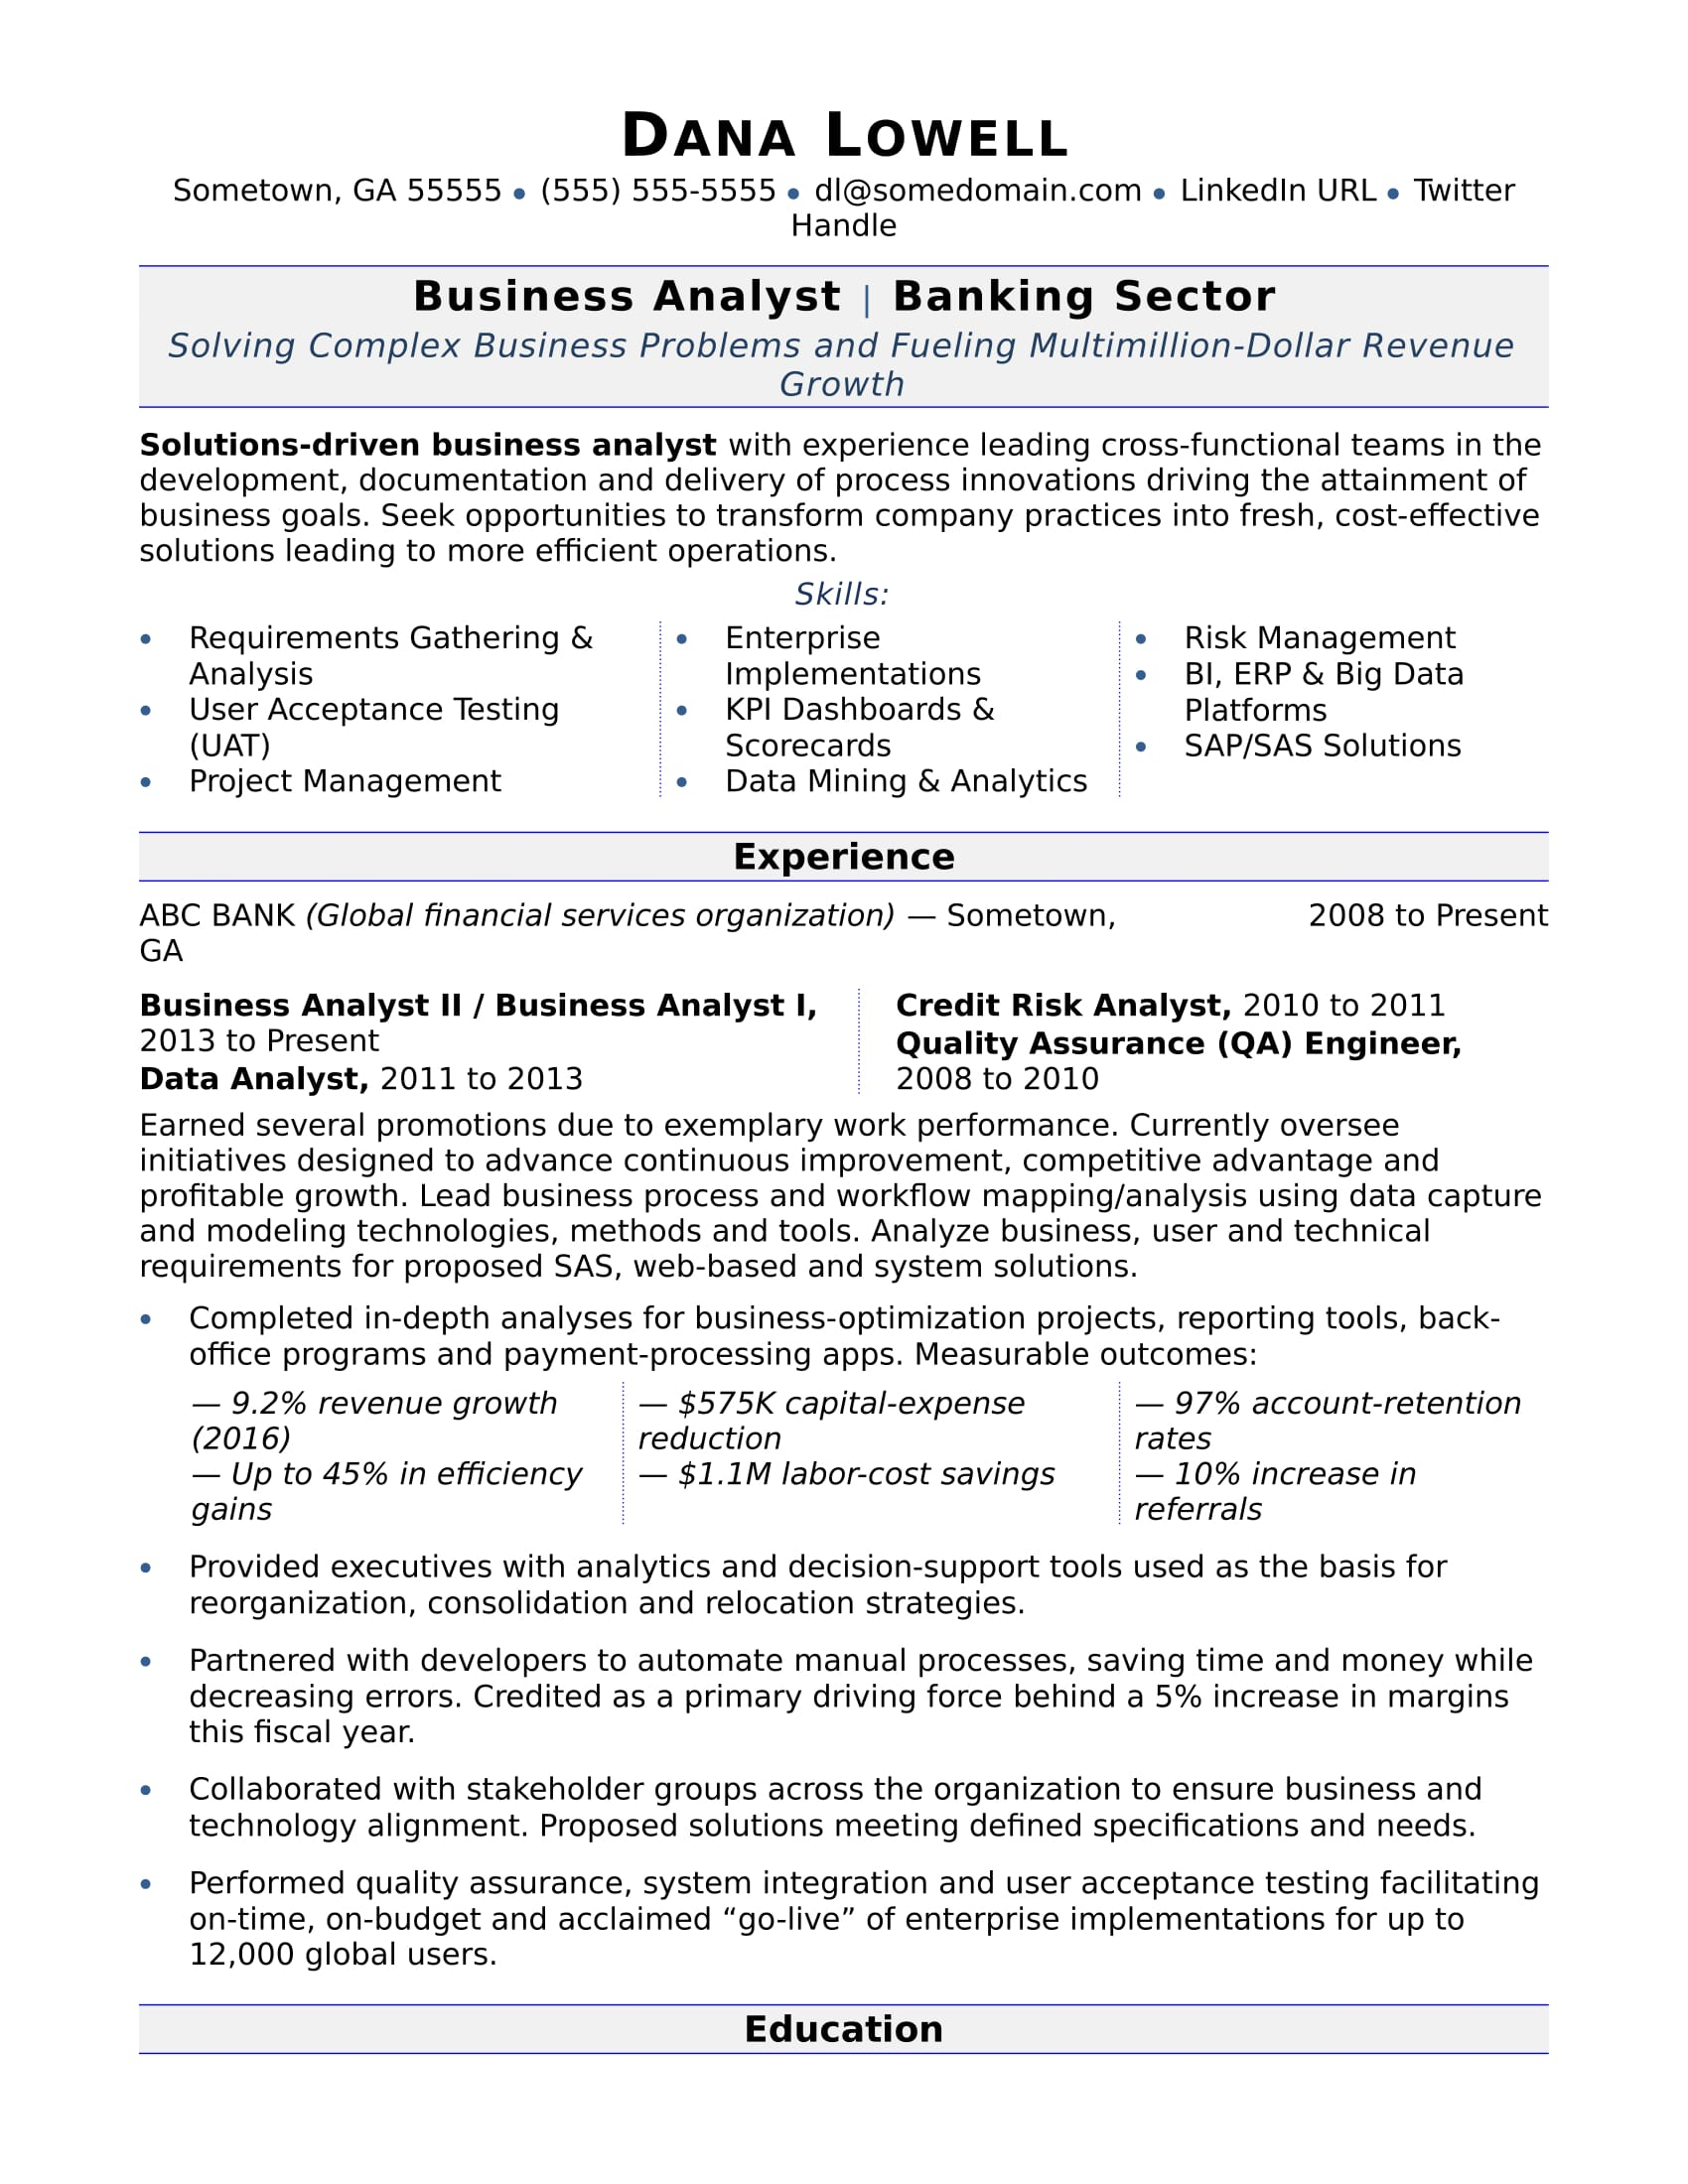 sample resume for financial analyst in india